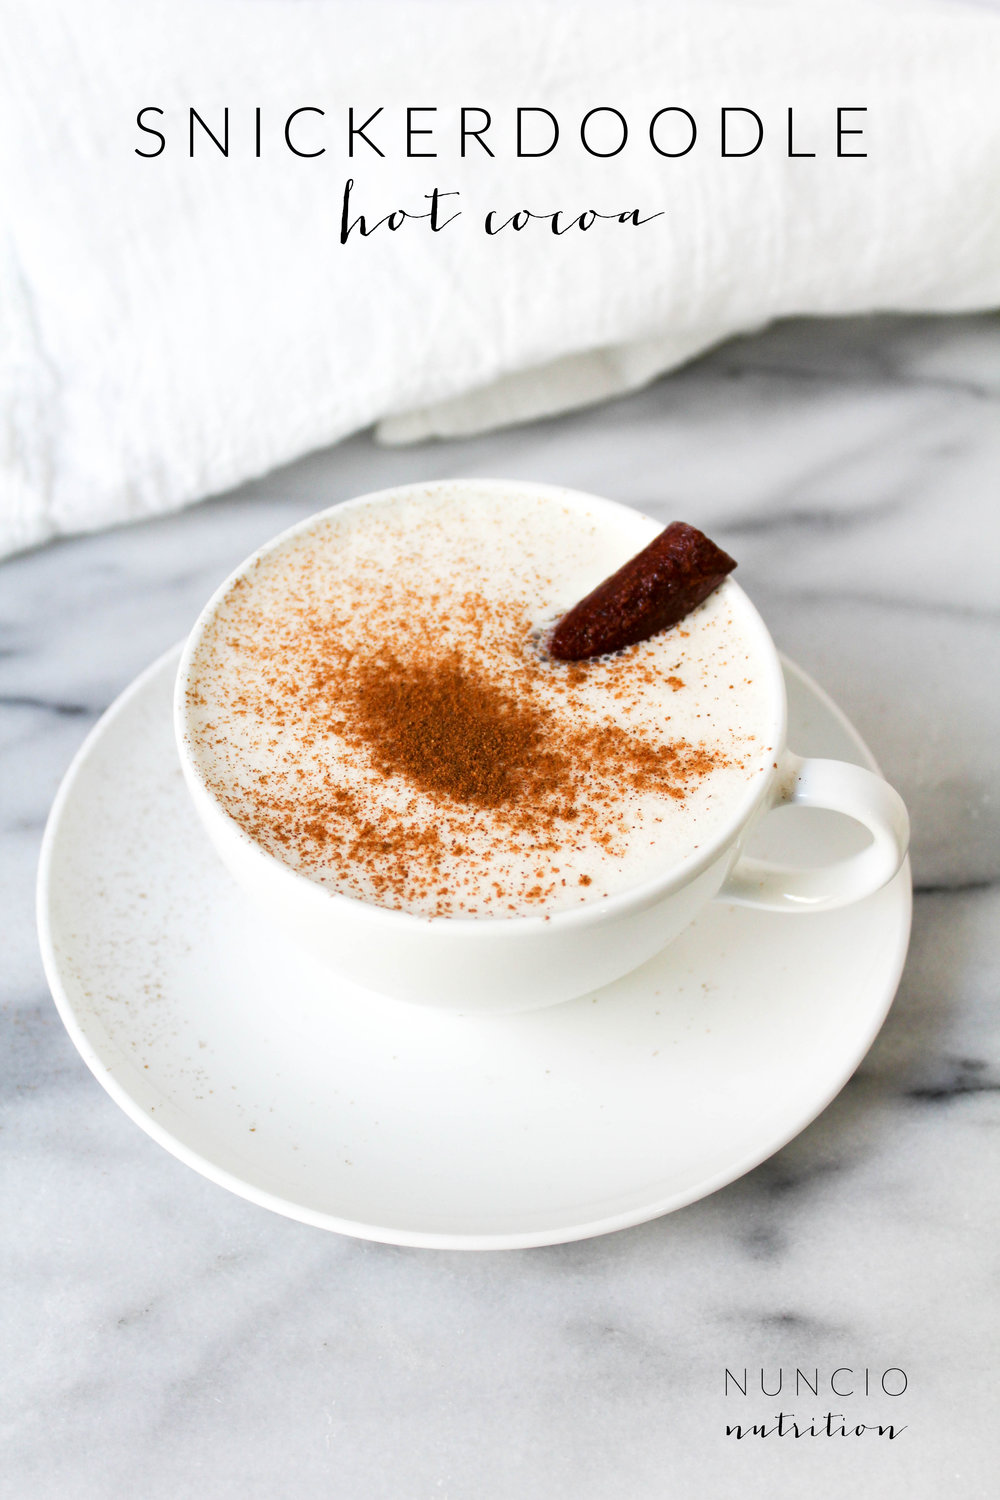 snickerdoodle hot cocoa (1 of 1).jpg